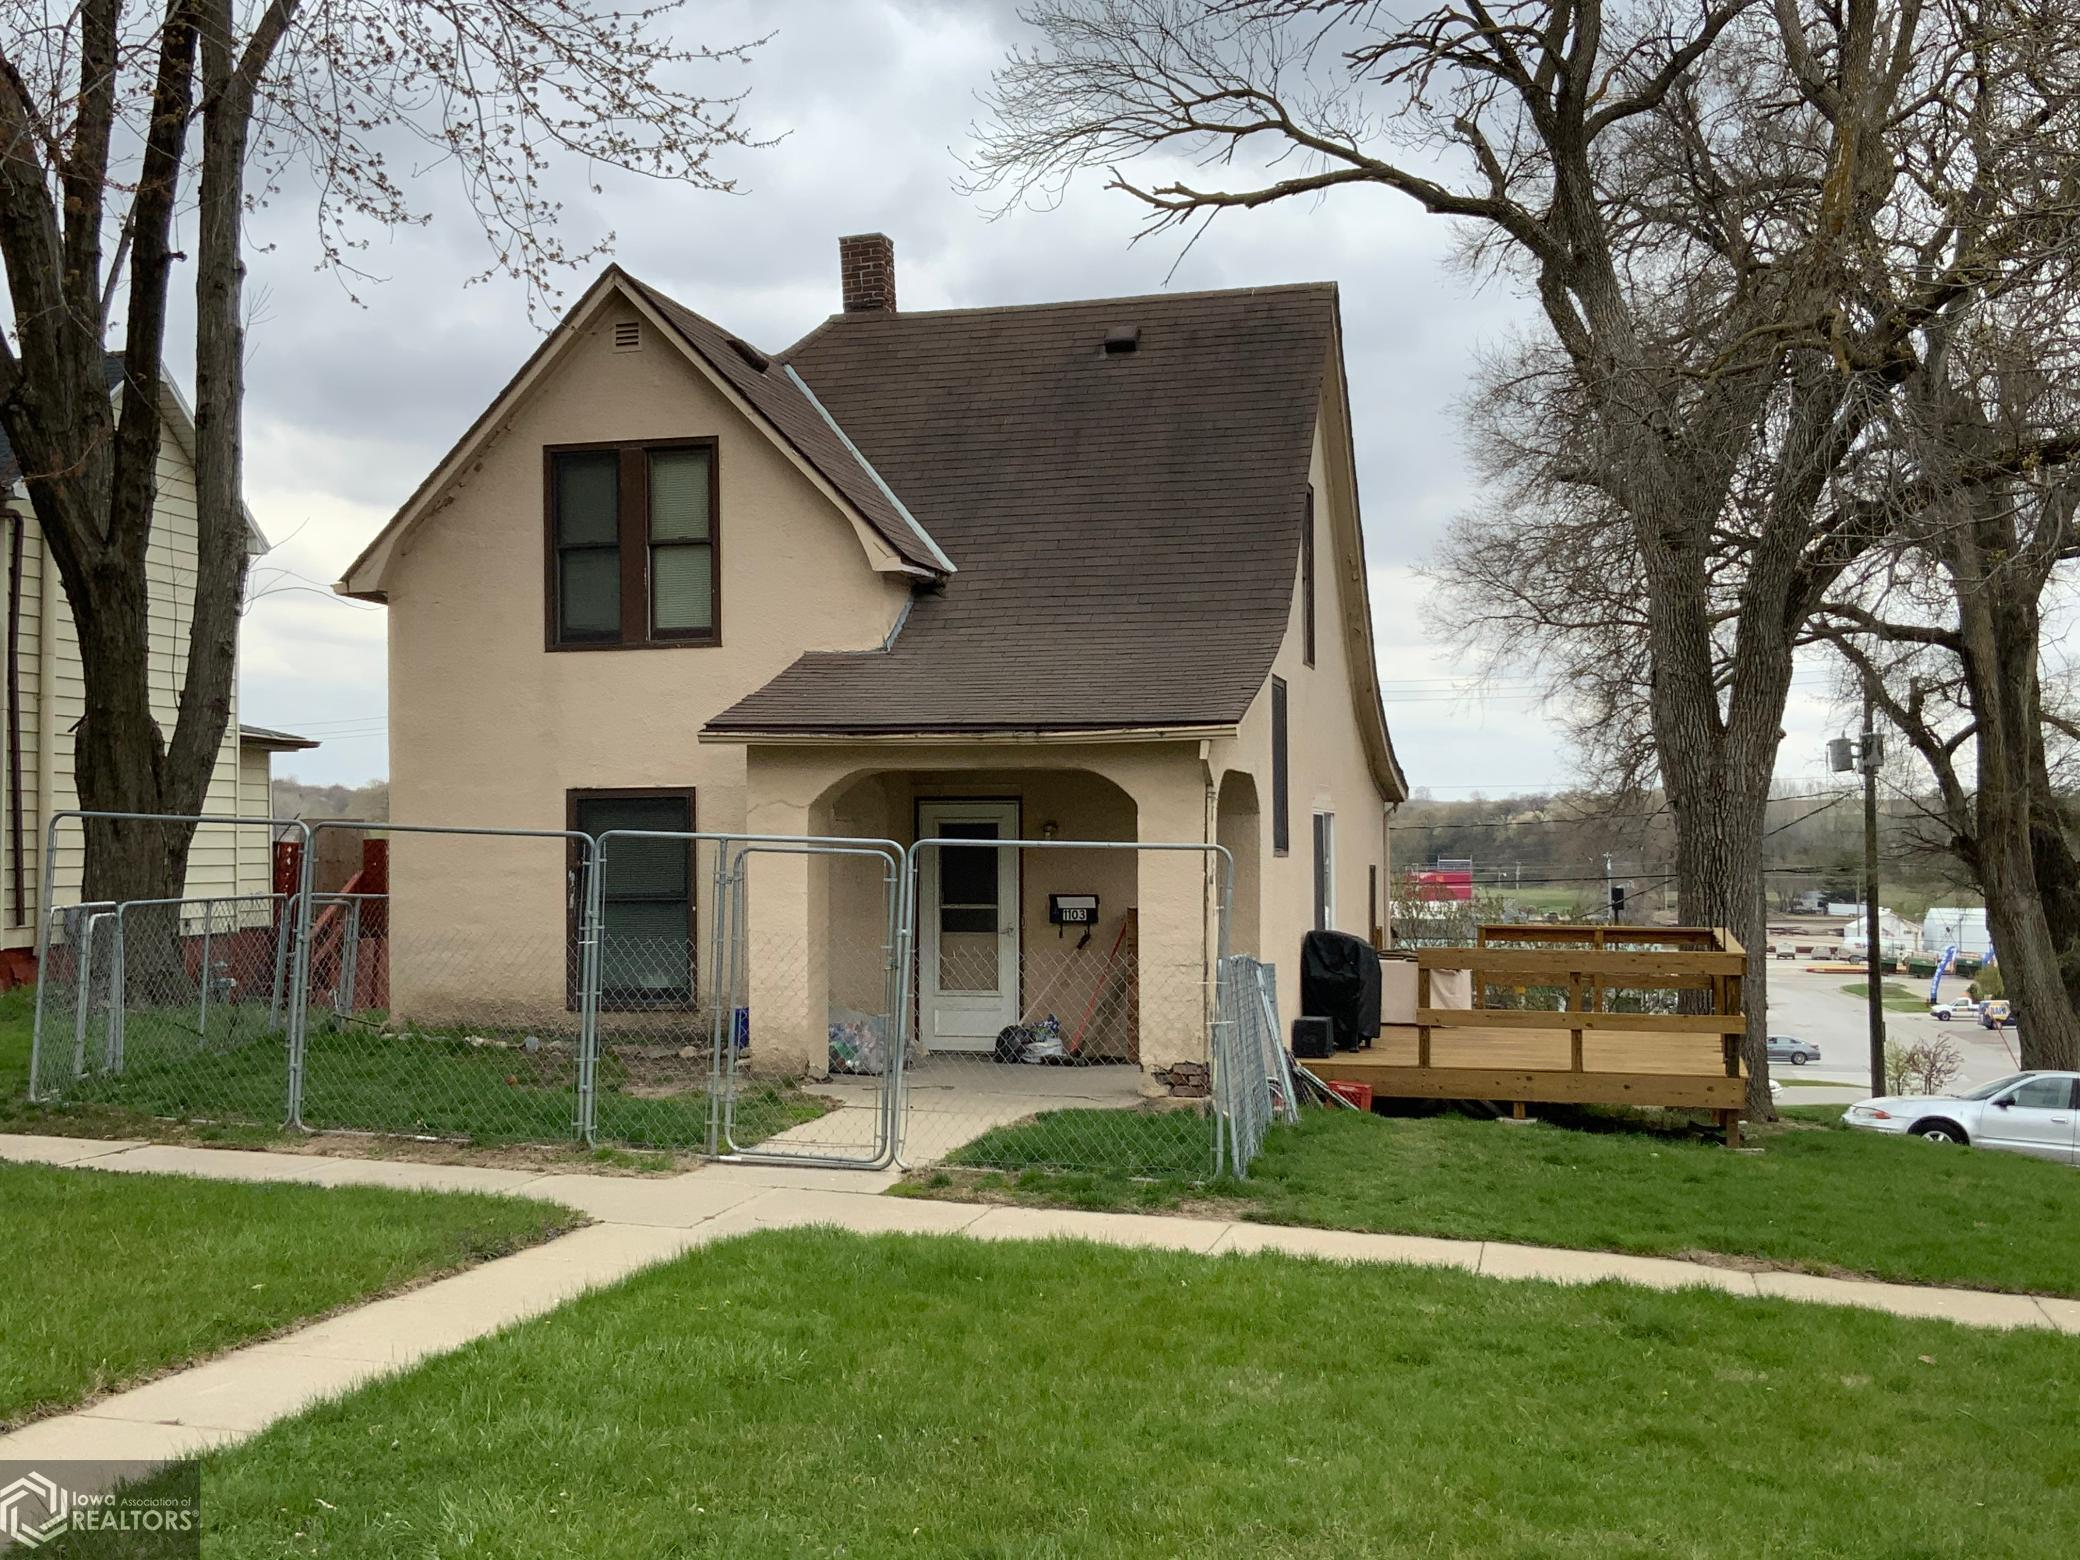 1103 3rd, Denison, Iowa 51442-1936, 3 Bedrooms Bedrooms, ,1 BathroomBathrooms,Single Family,For Sale,3rd,5741972